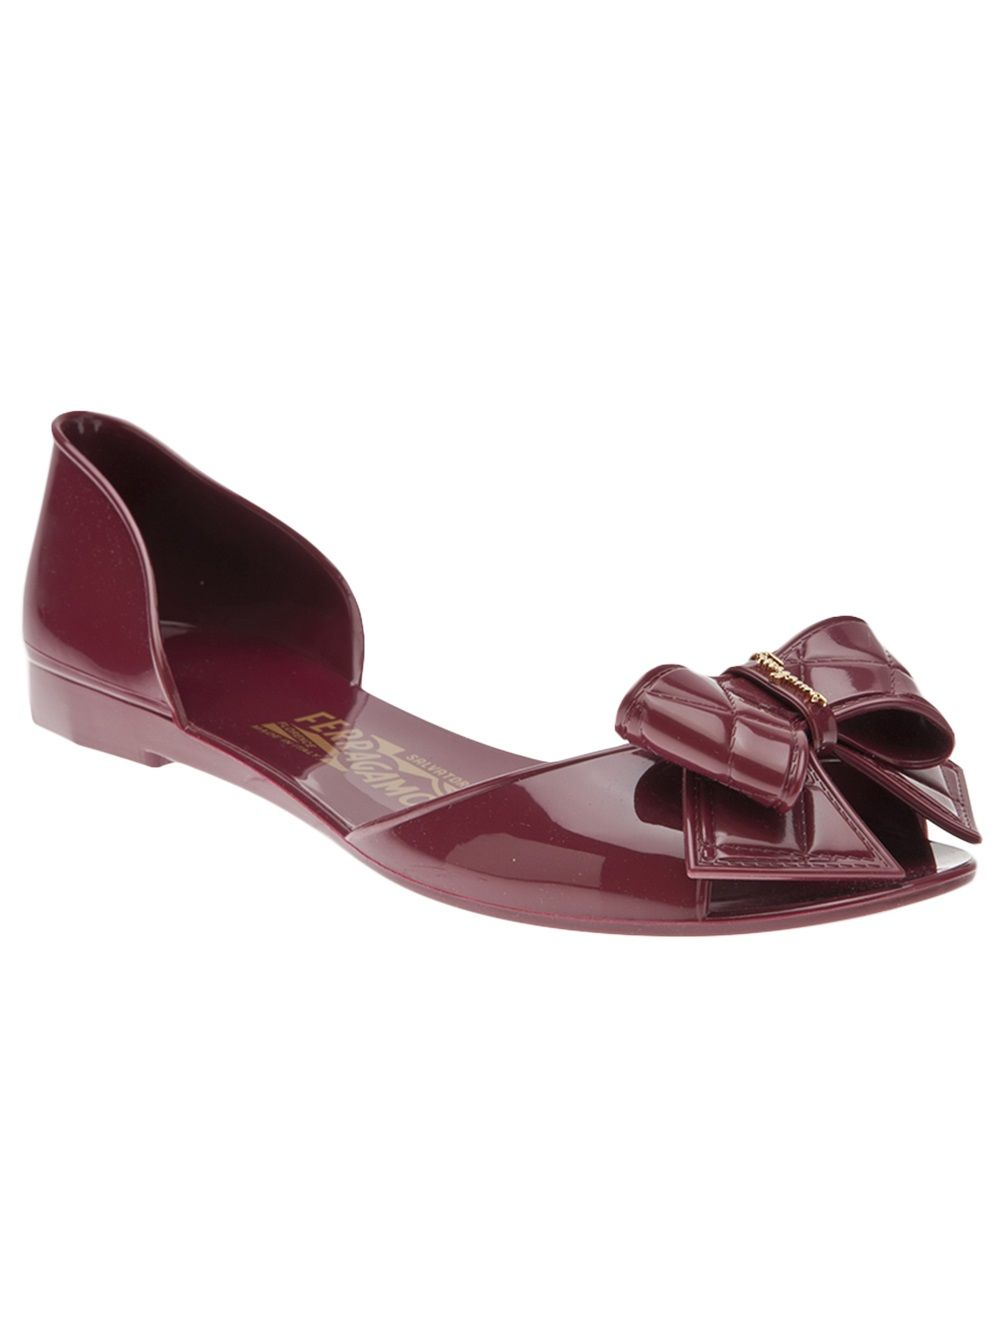 49bc3bc3427d9 Salvatore Ferragamo Jelly Flat - Hu s Shoes - Farfetch.com